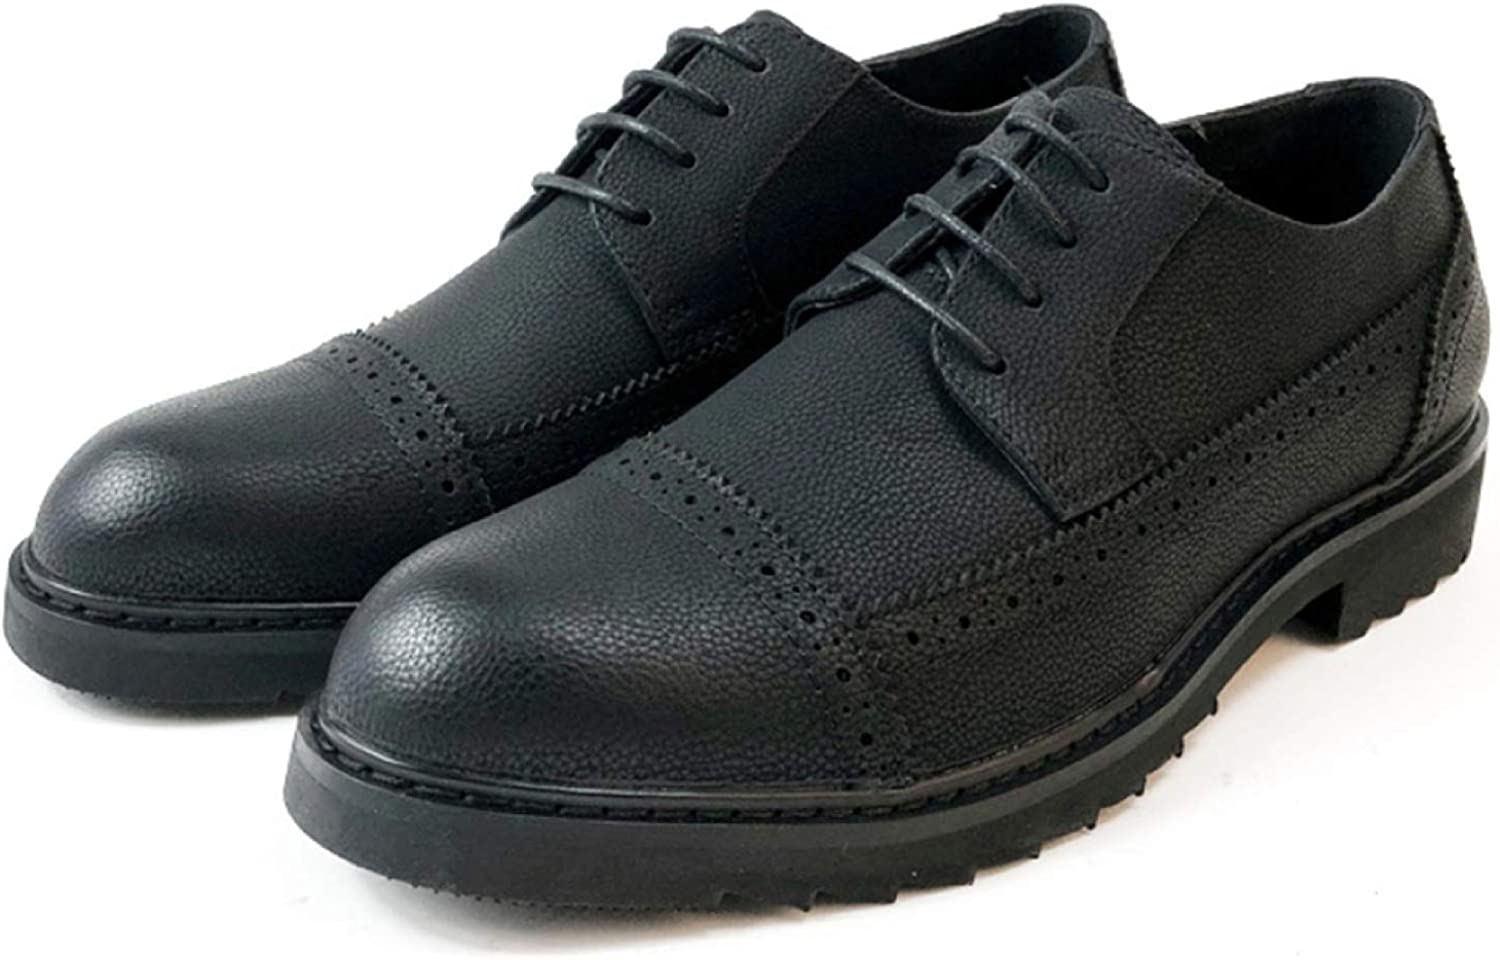 Men's lace up Bullock carved shoes fashion derby shoes business casual formal dress shoes